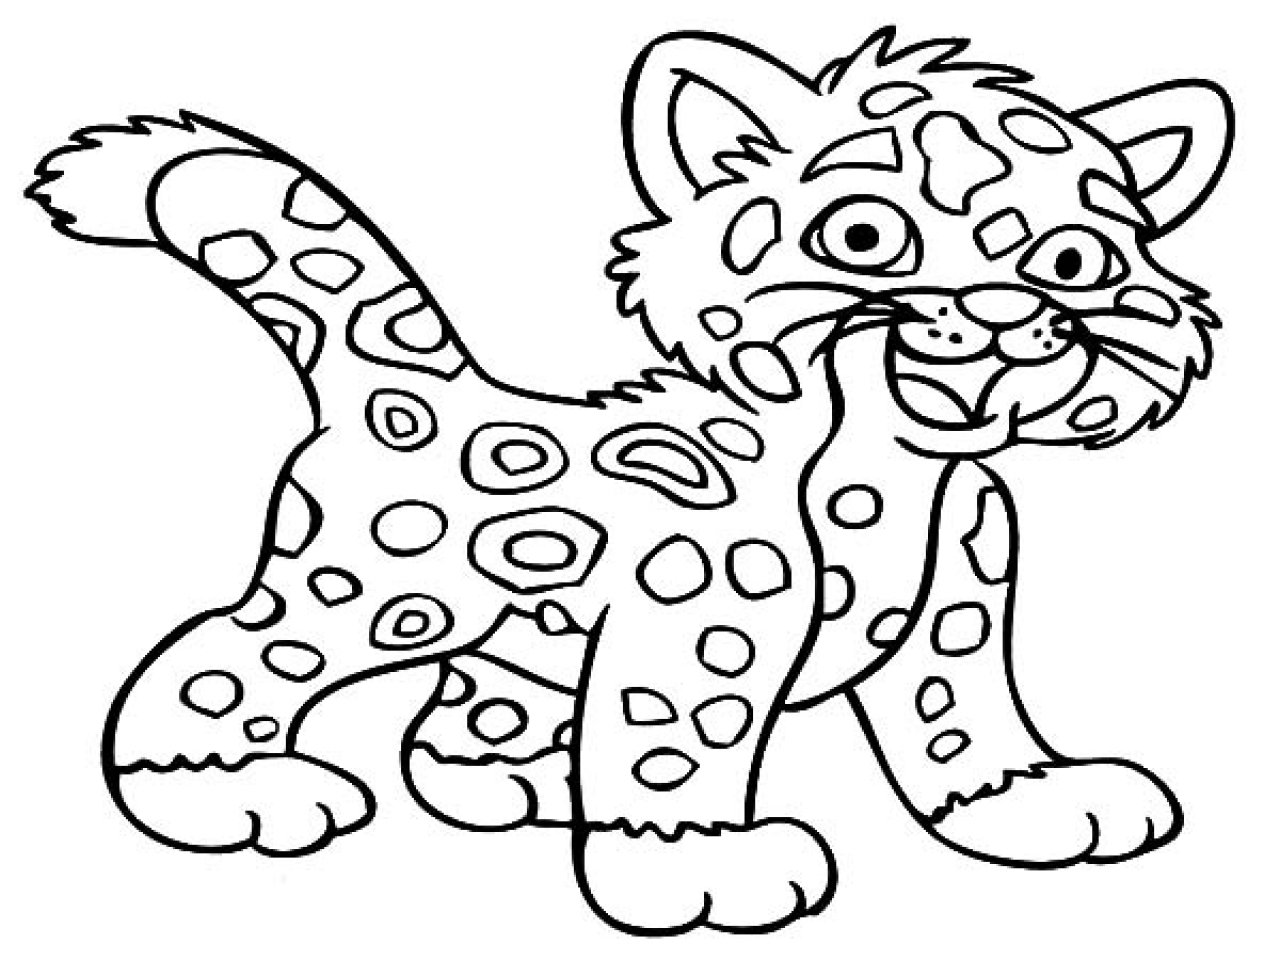 27 Jaguar Coloring Pages Images | FREE COLORING PAGES